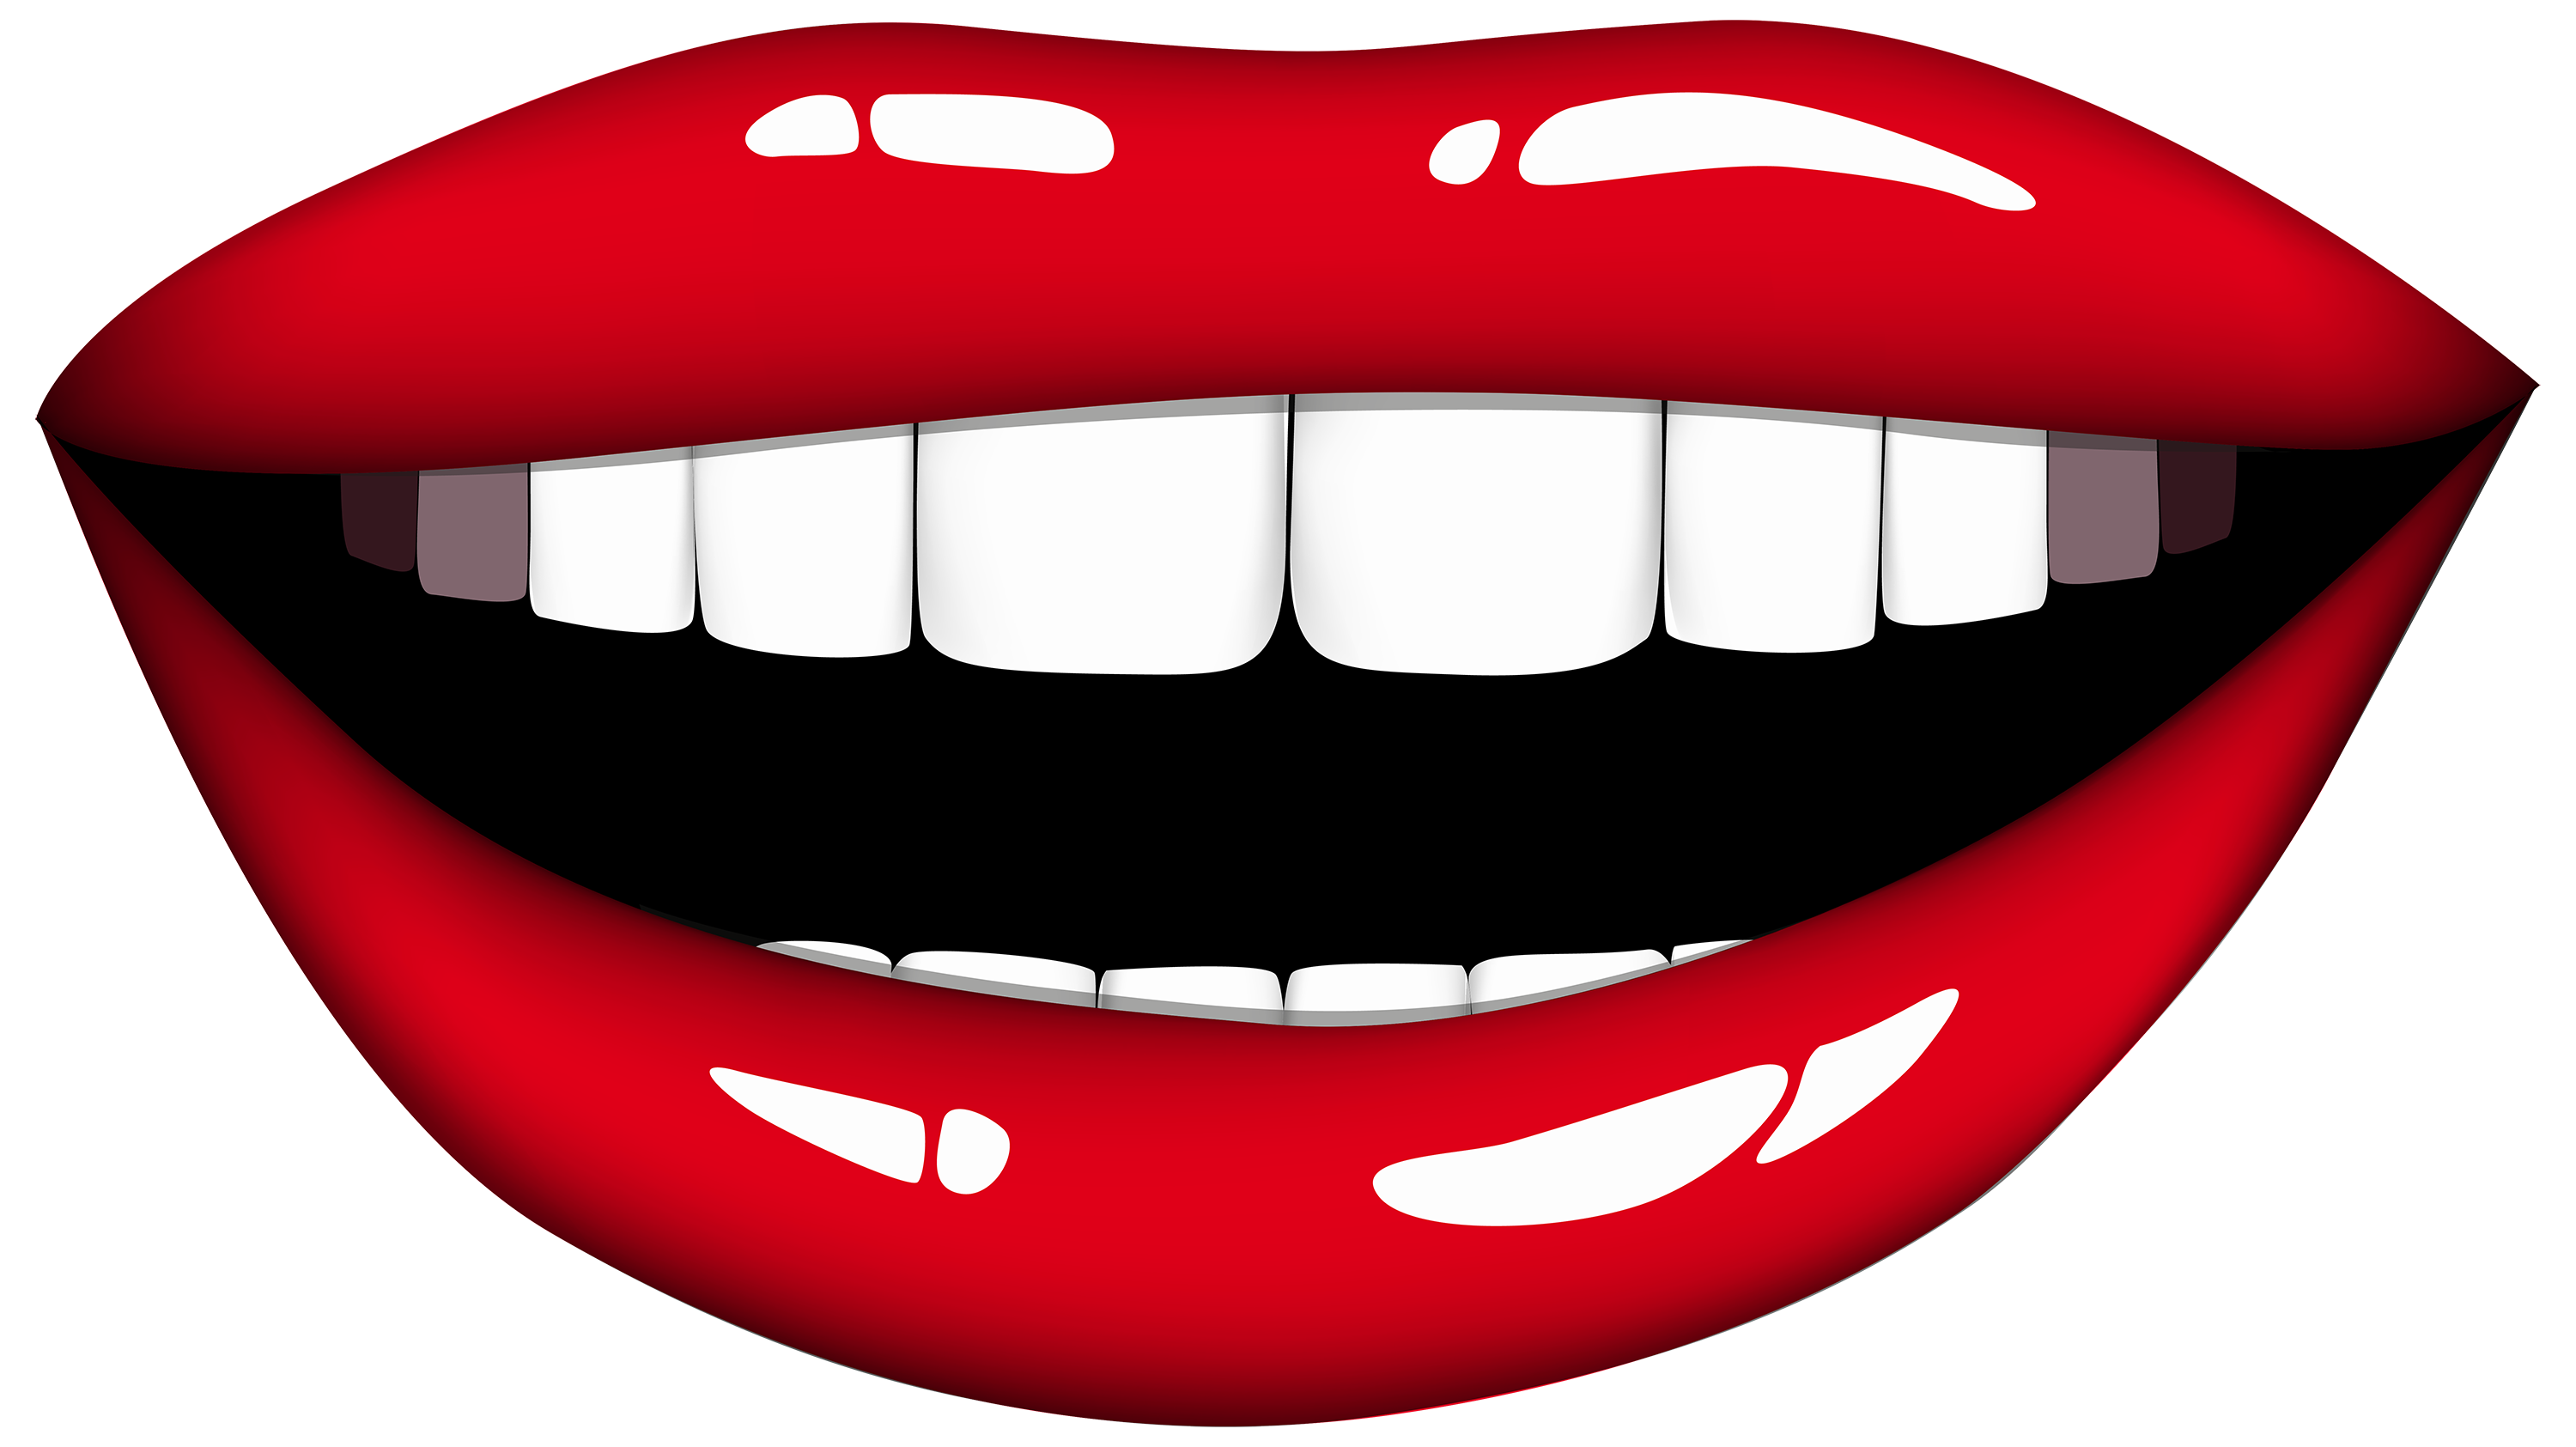 Smiling mouth png best. Lips clipart color jpg freeuse stock